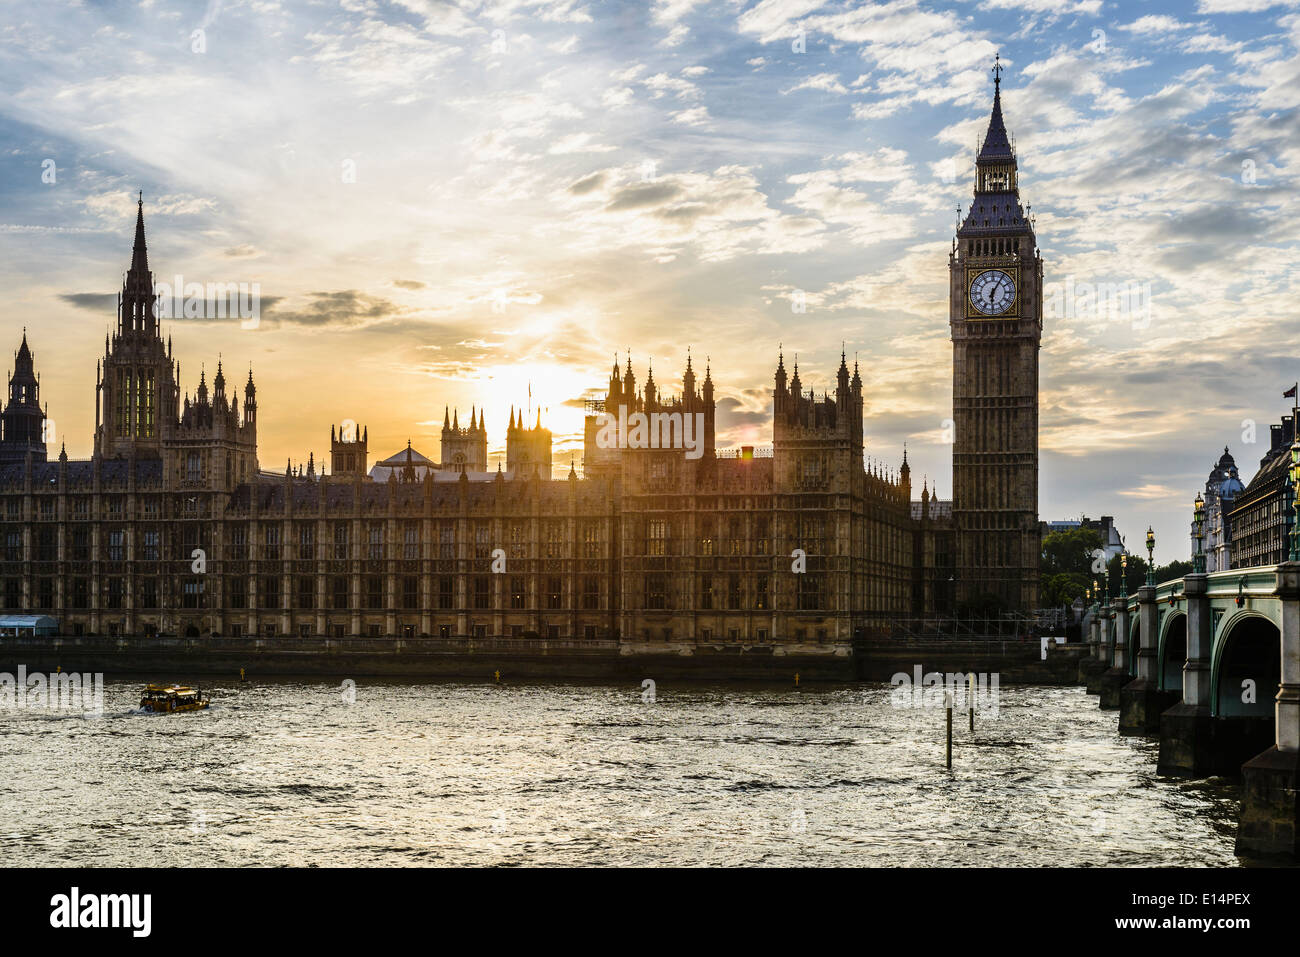 Sun setting over Houses of Parliament, London, United Kingdom - Stock Image